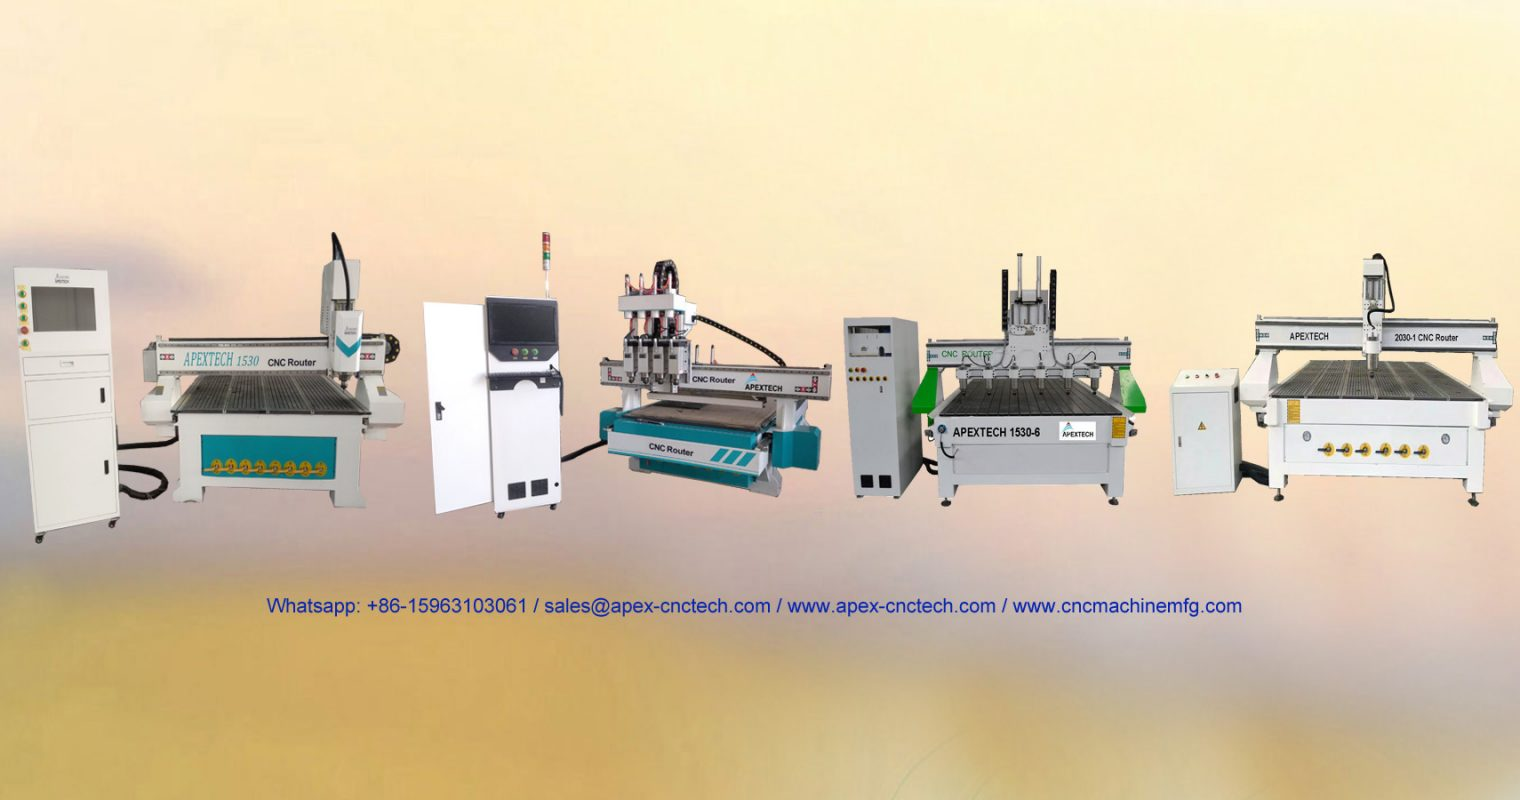 Single Head Wood Engraving Machine Processing Solid Wood Furniture, Windows, Doors, Lockers, Drawers